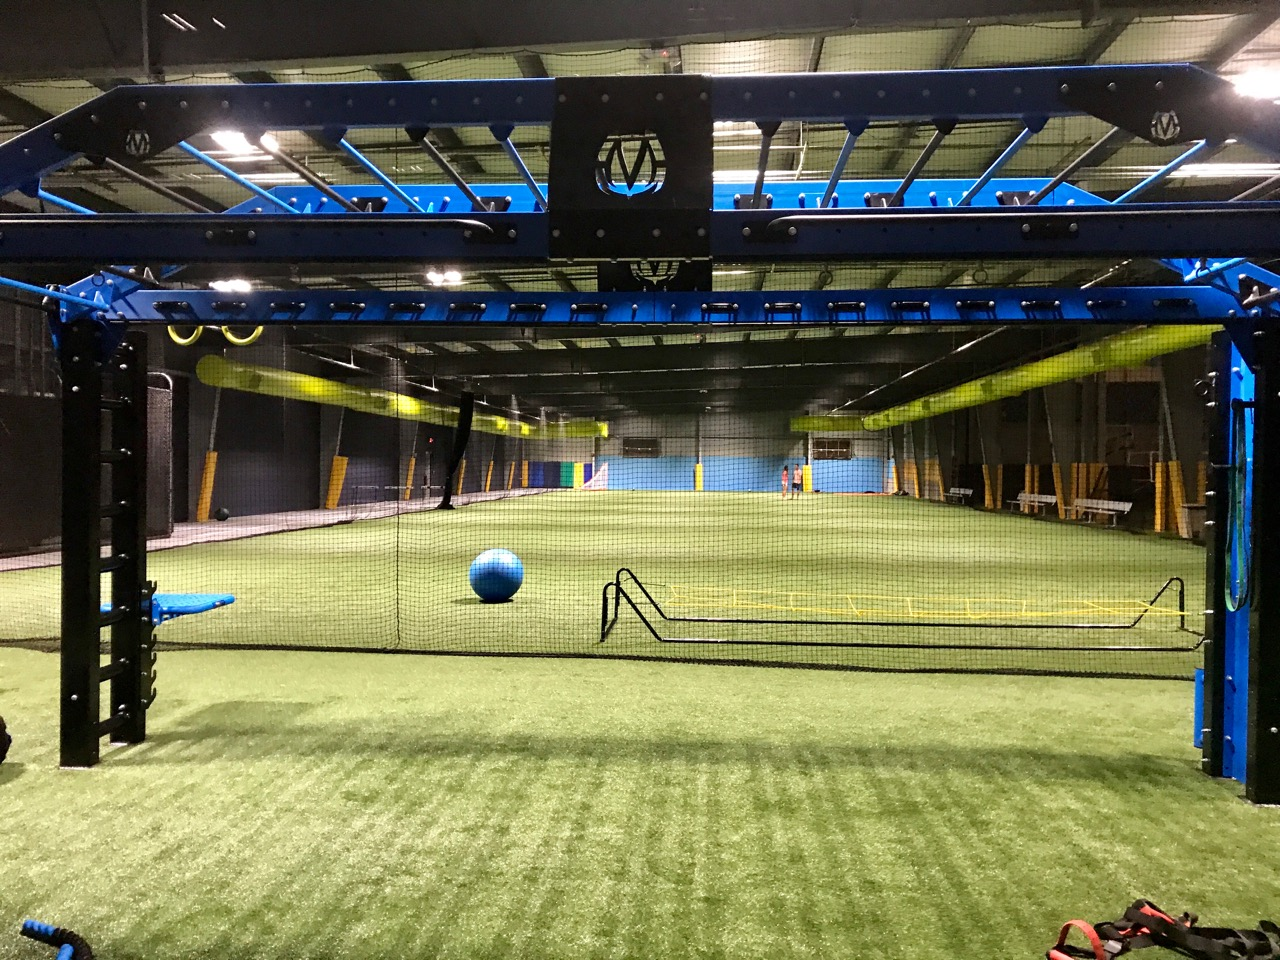 Indoor sport performance facility